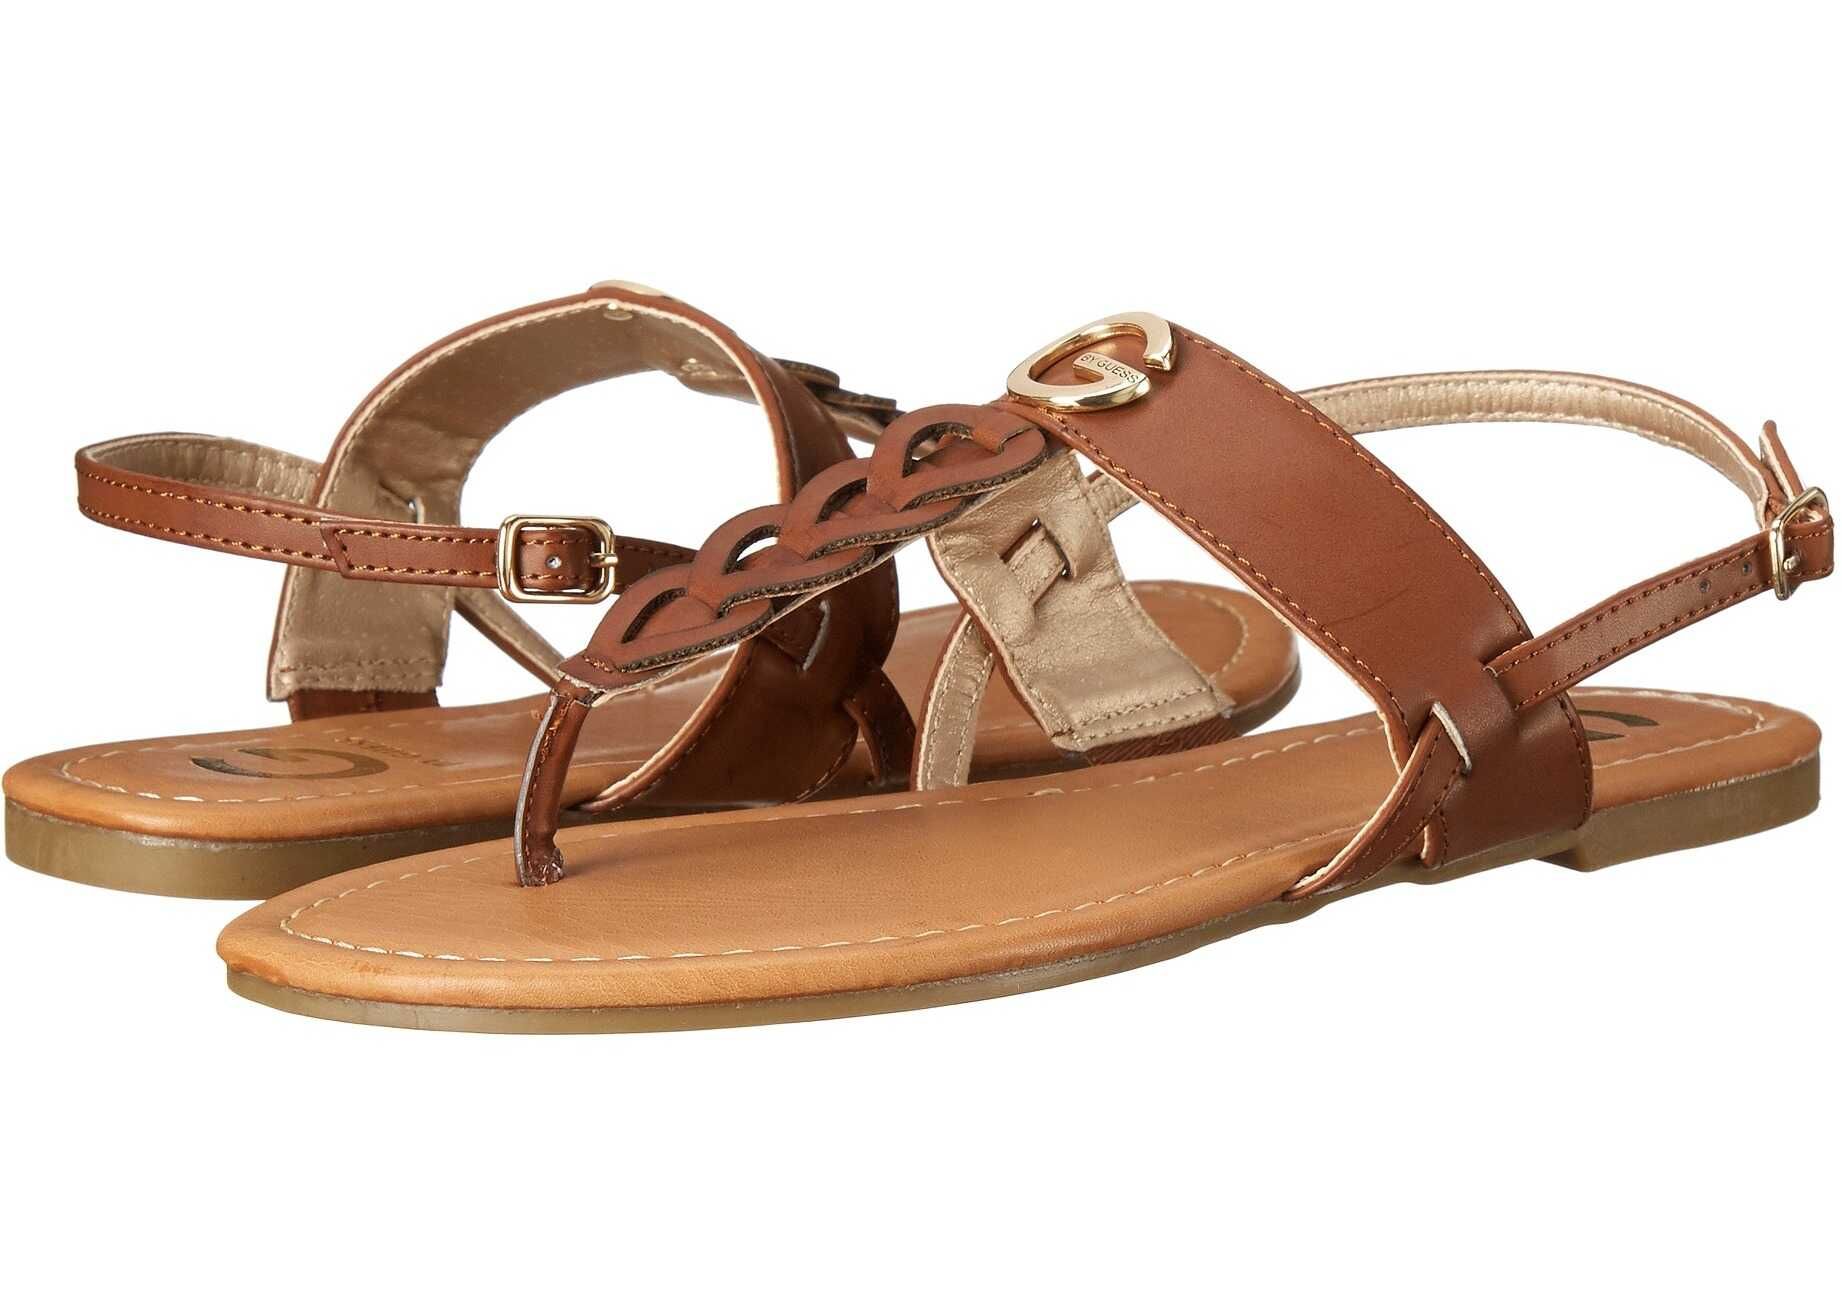 G by GUESS Lilo Brown